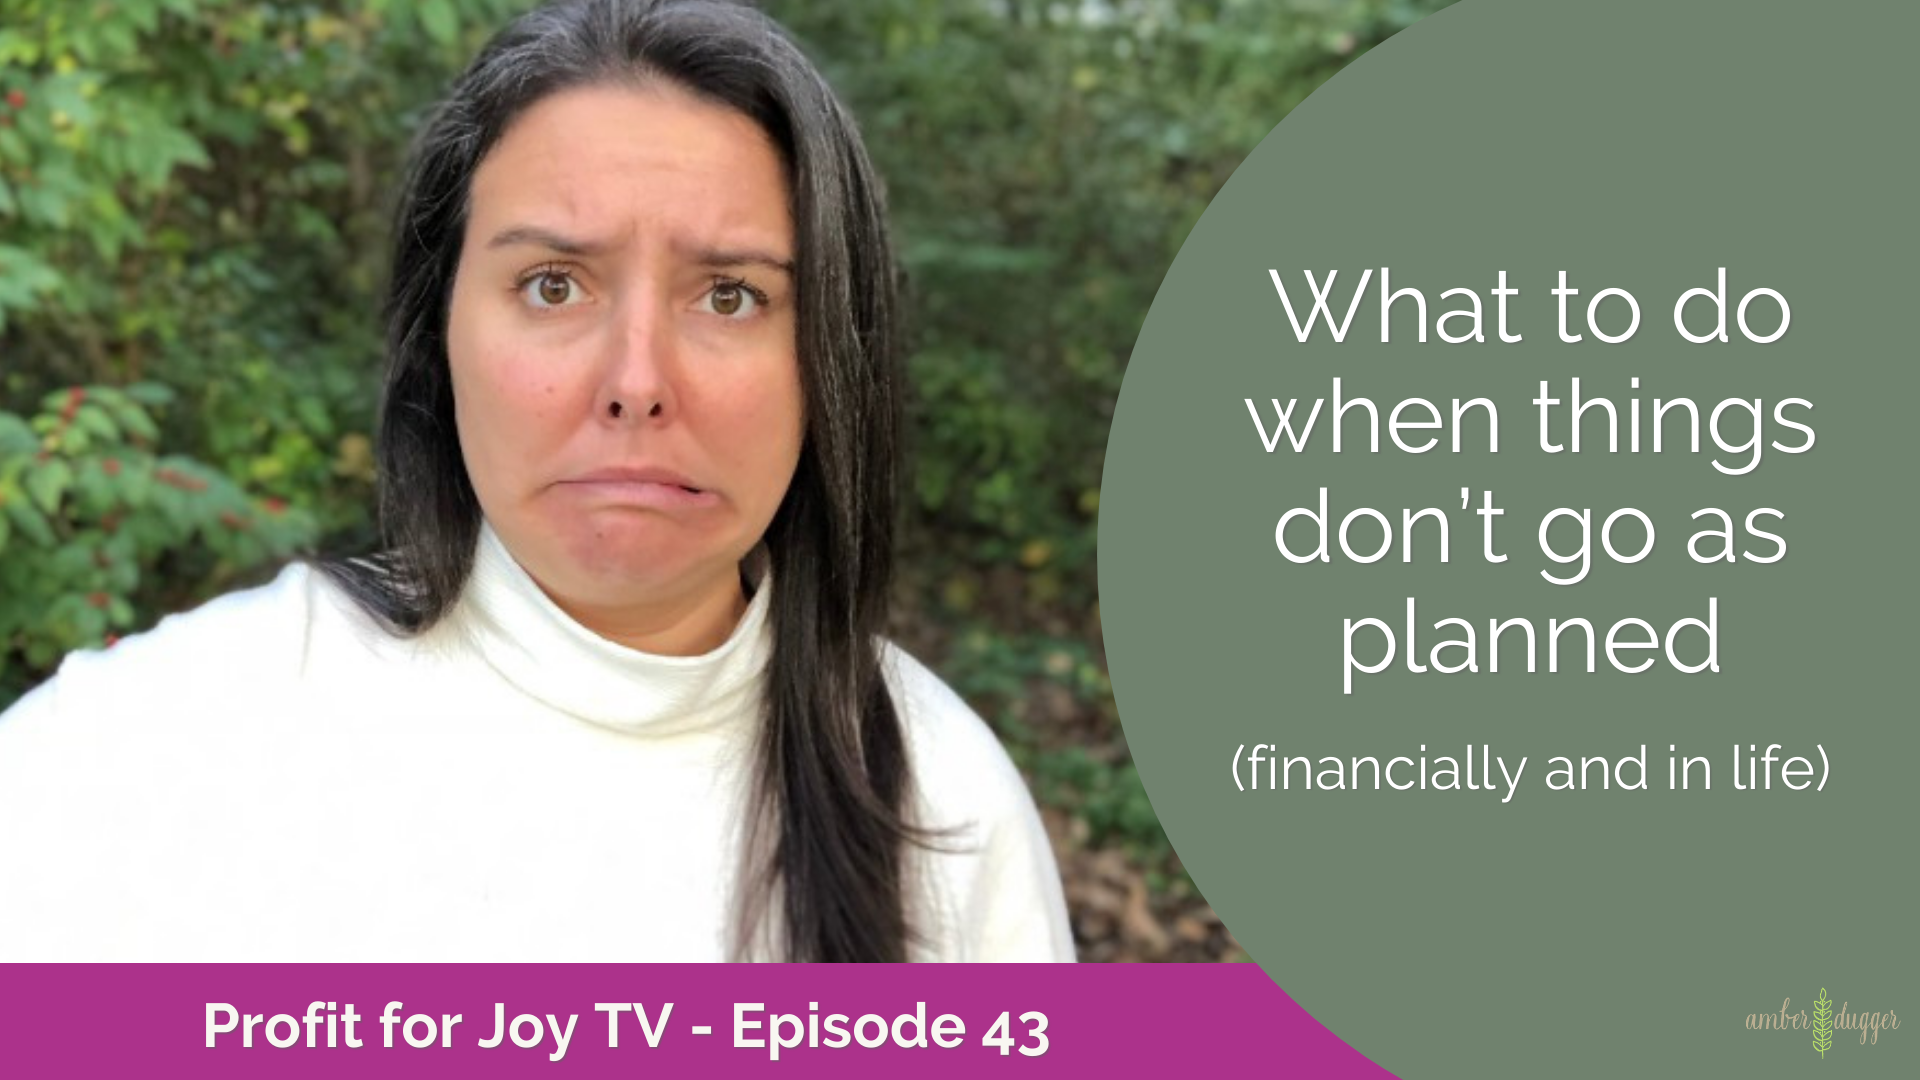 What to do when things don't go as planned (financially and in life)